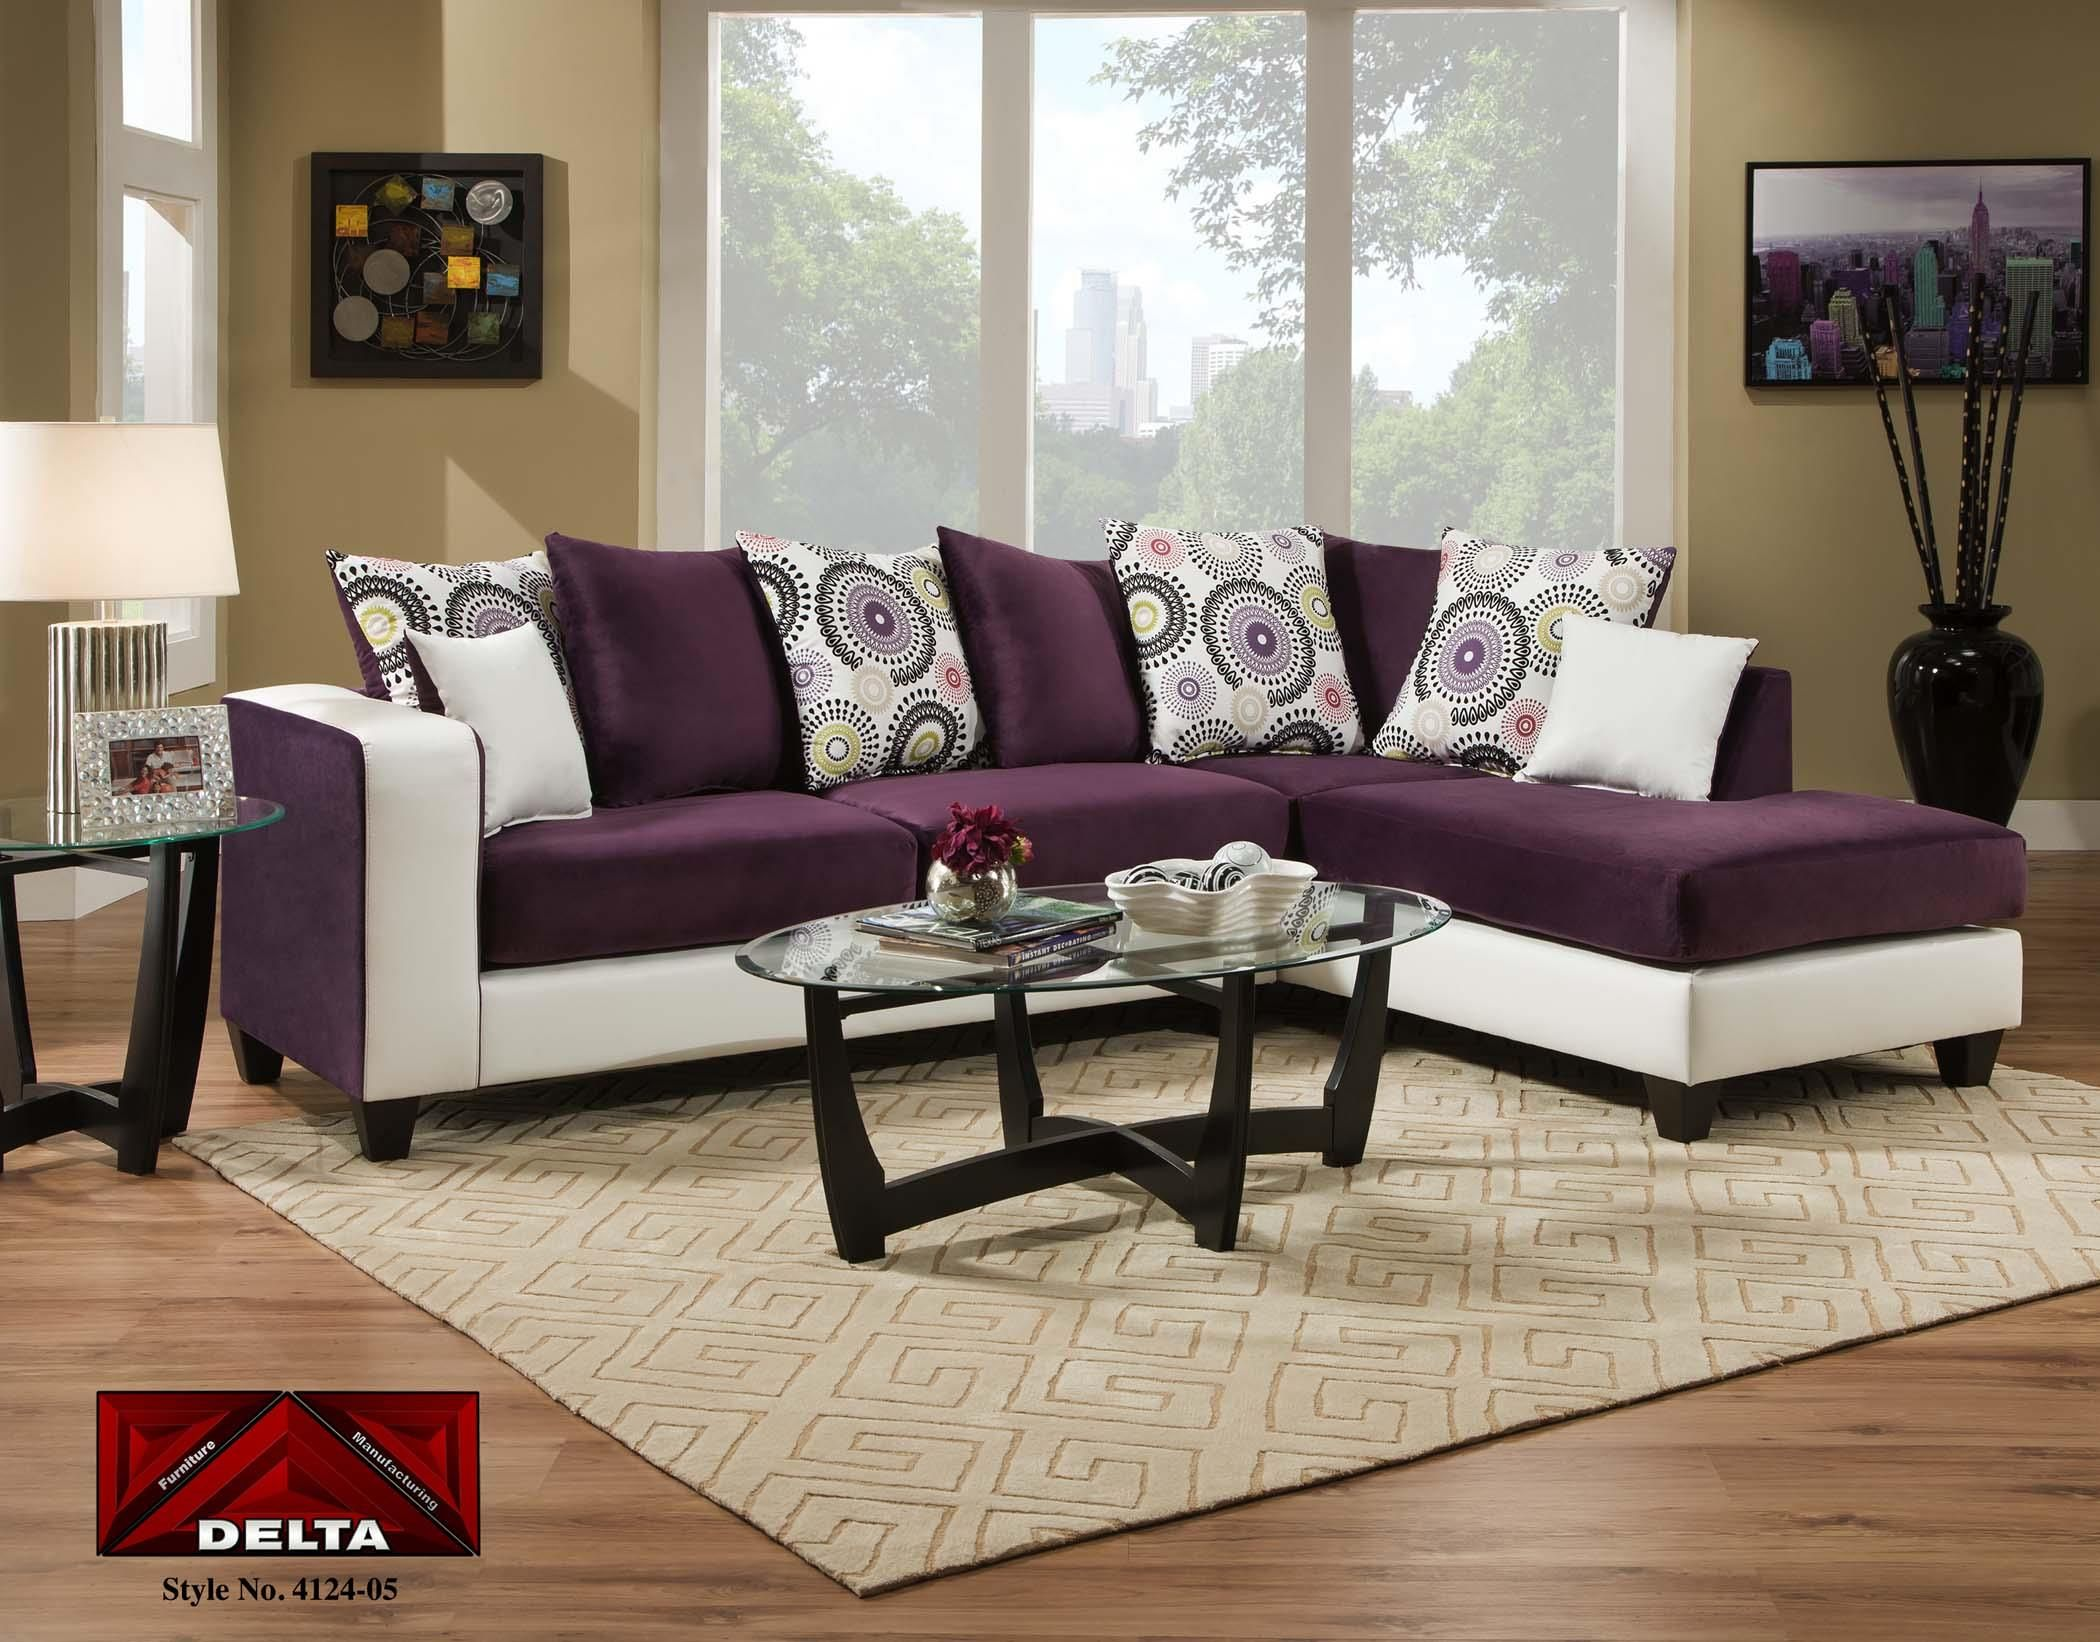 Delta 4124 Deltona Amethyst Sectional Sofa by Delta Furniture